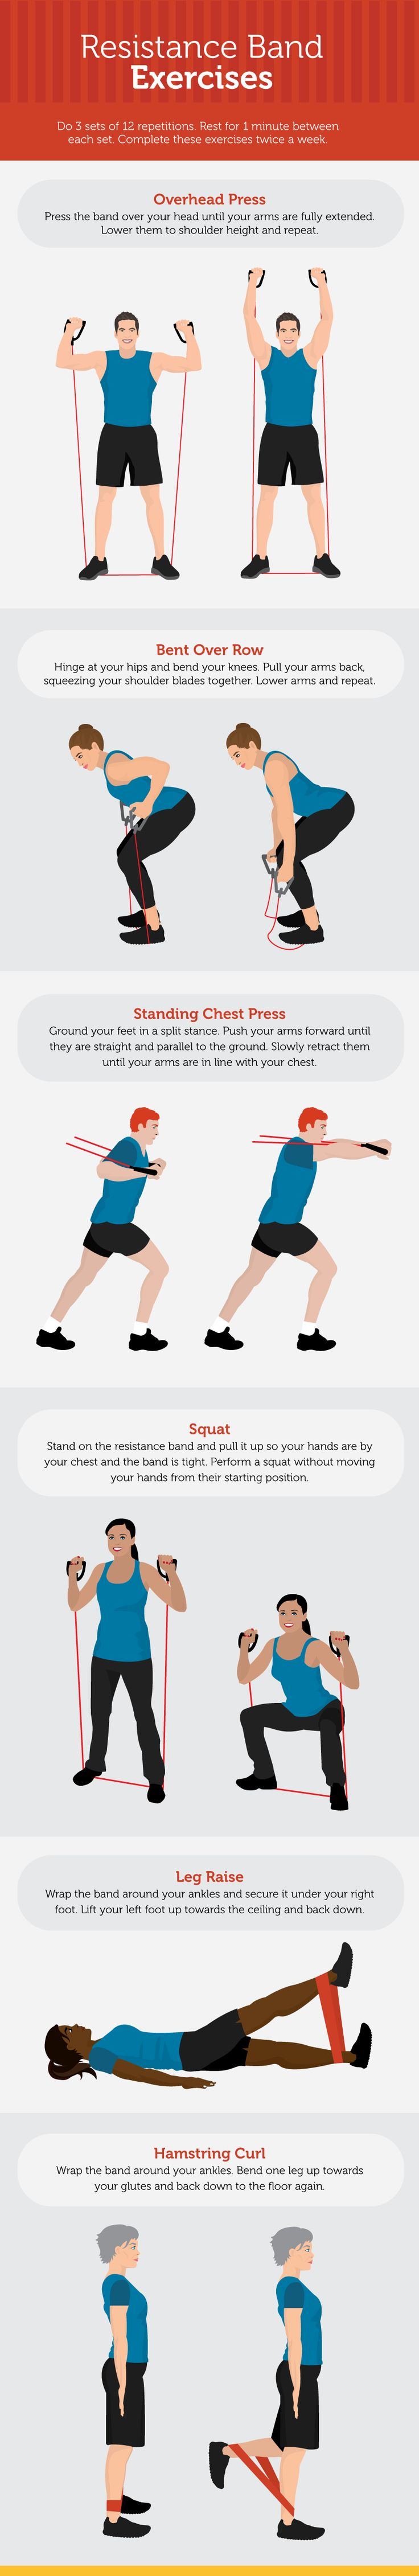 Resistance Band Exercises | Posted By: AdvancedWeightLossTips.com